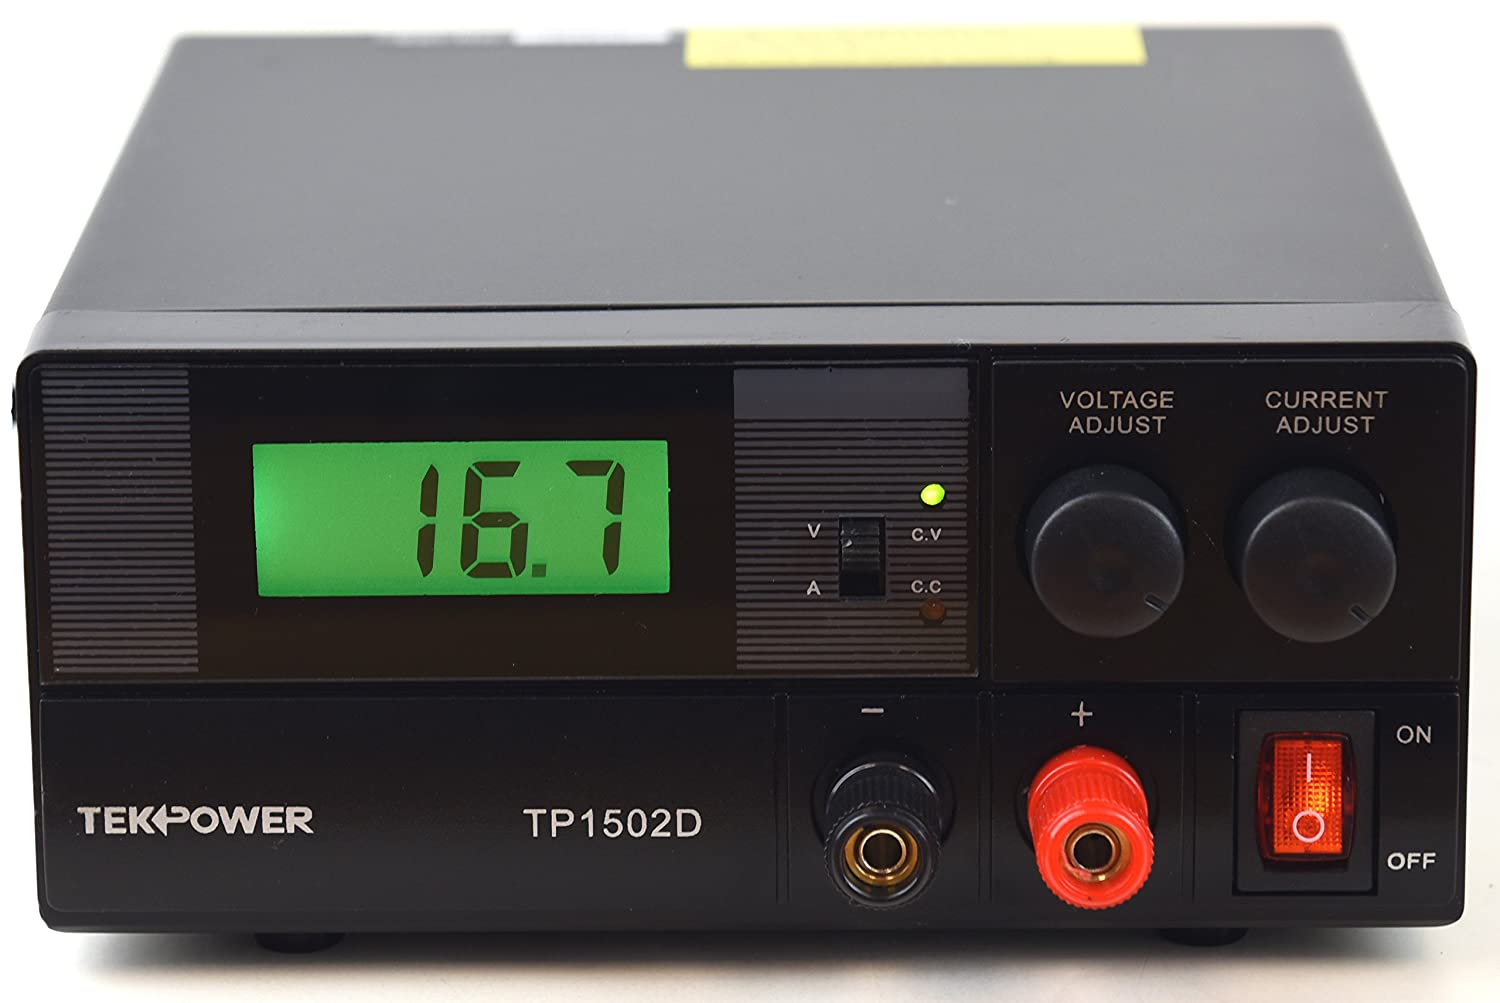 Tekpower Linear Power Supply 15v 2a Tp1502d Digital Acdc With Transformer Rectifier Smoother And Display Computers Accessories